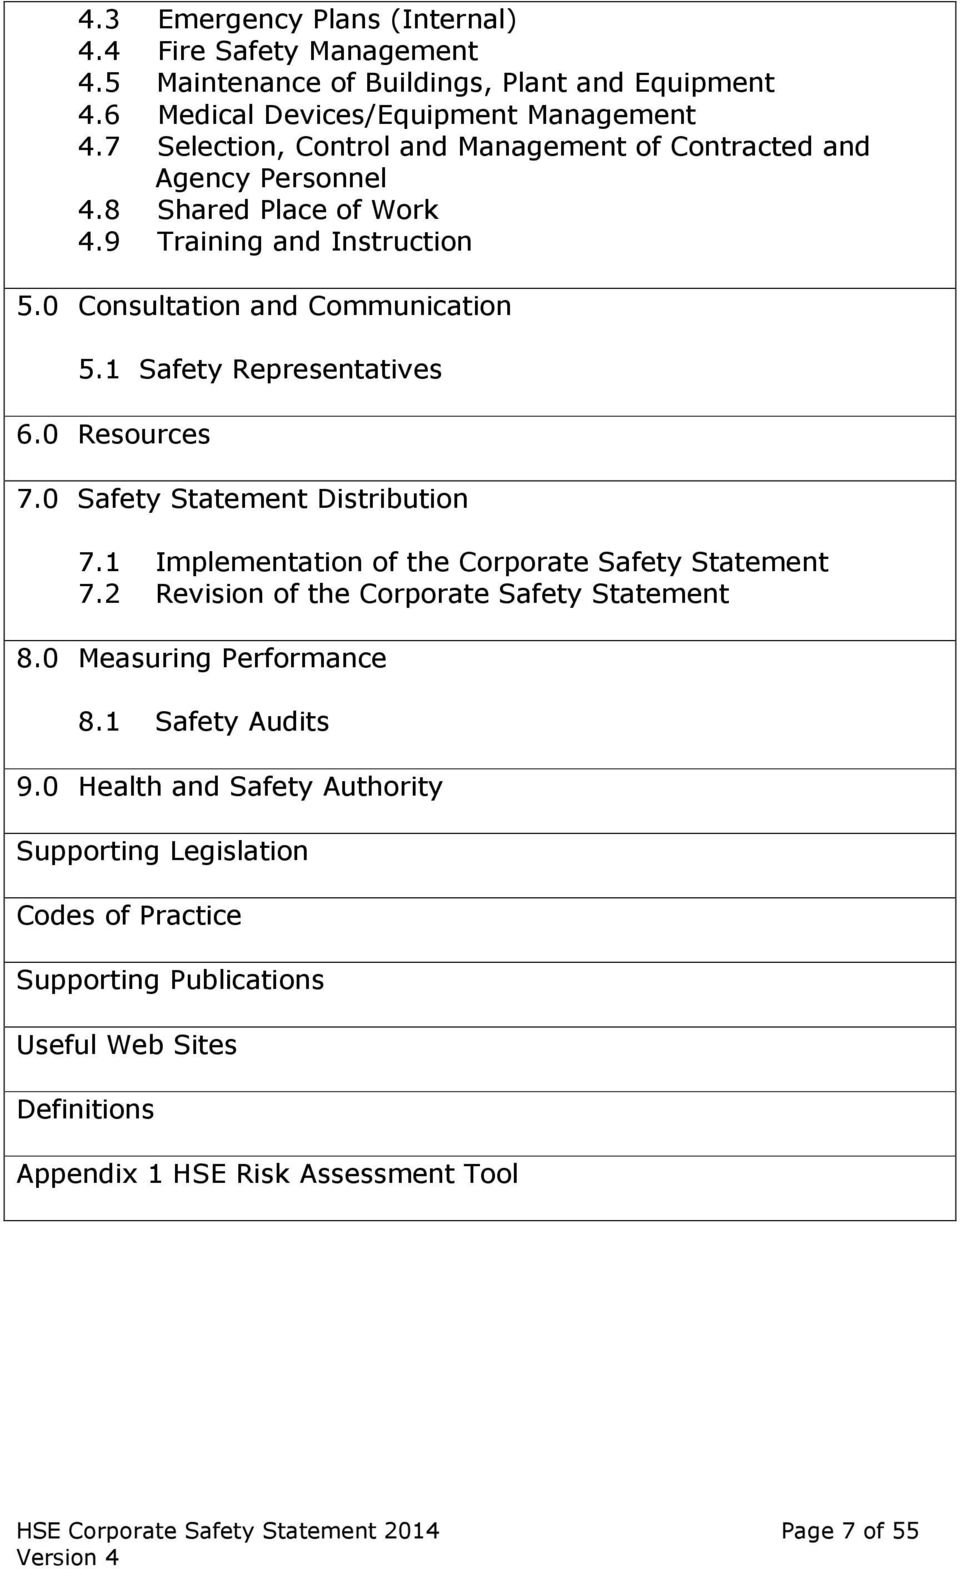 1 Safety Representatives 6.0 Resources 7.0 Safety Statement Distribution 7.1 Implementation of the Corporate Safety Statement 7.2 Revision of the Corporate Safety Statement 8.